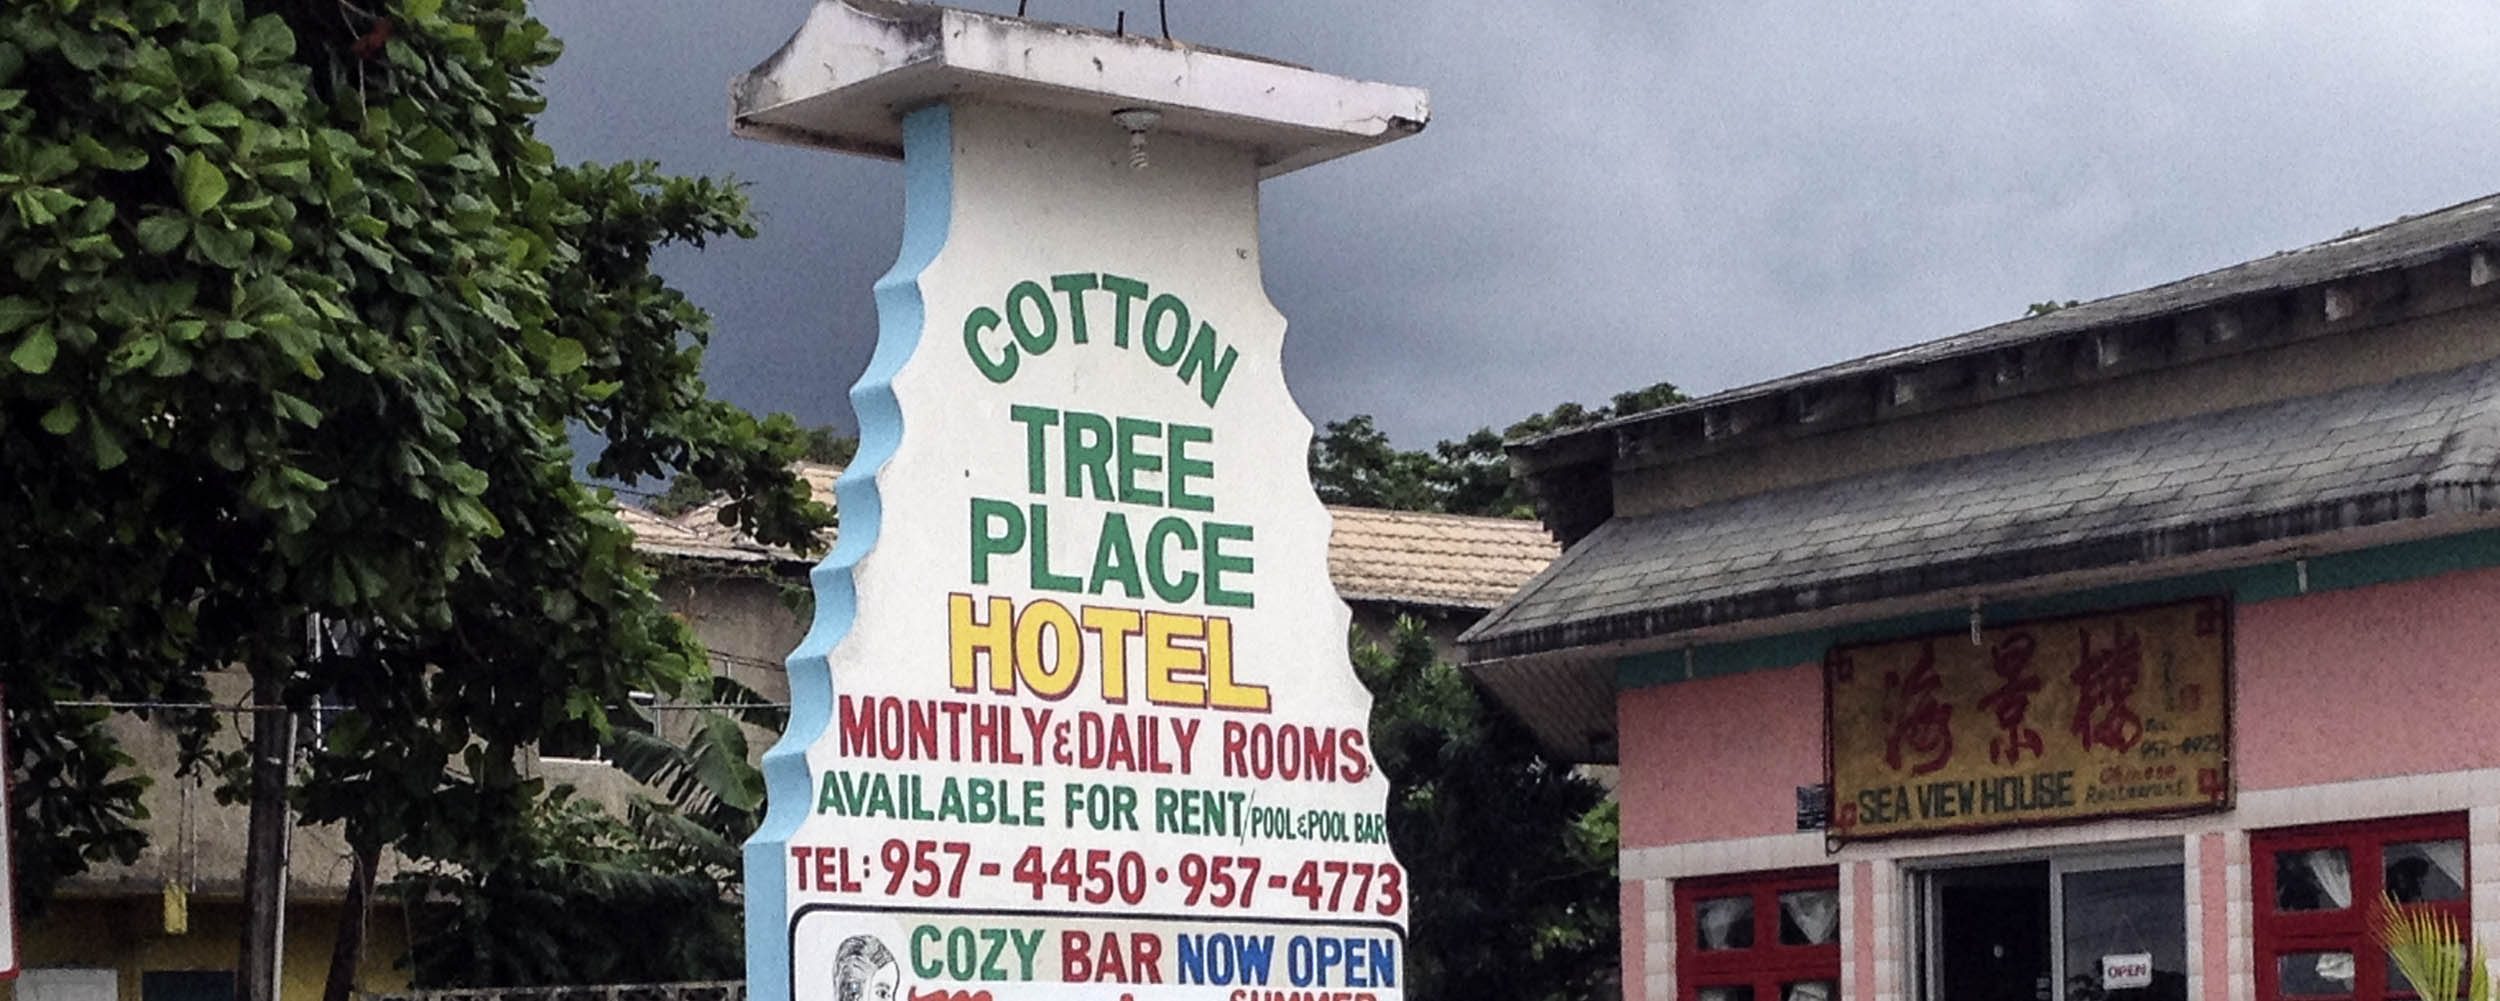 Cotton Tree Place Hotel - Negril Jamaica